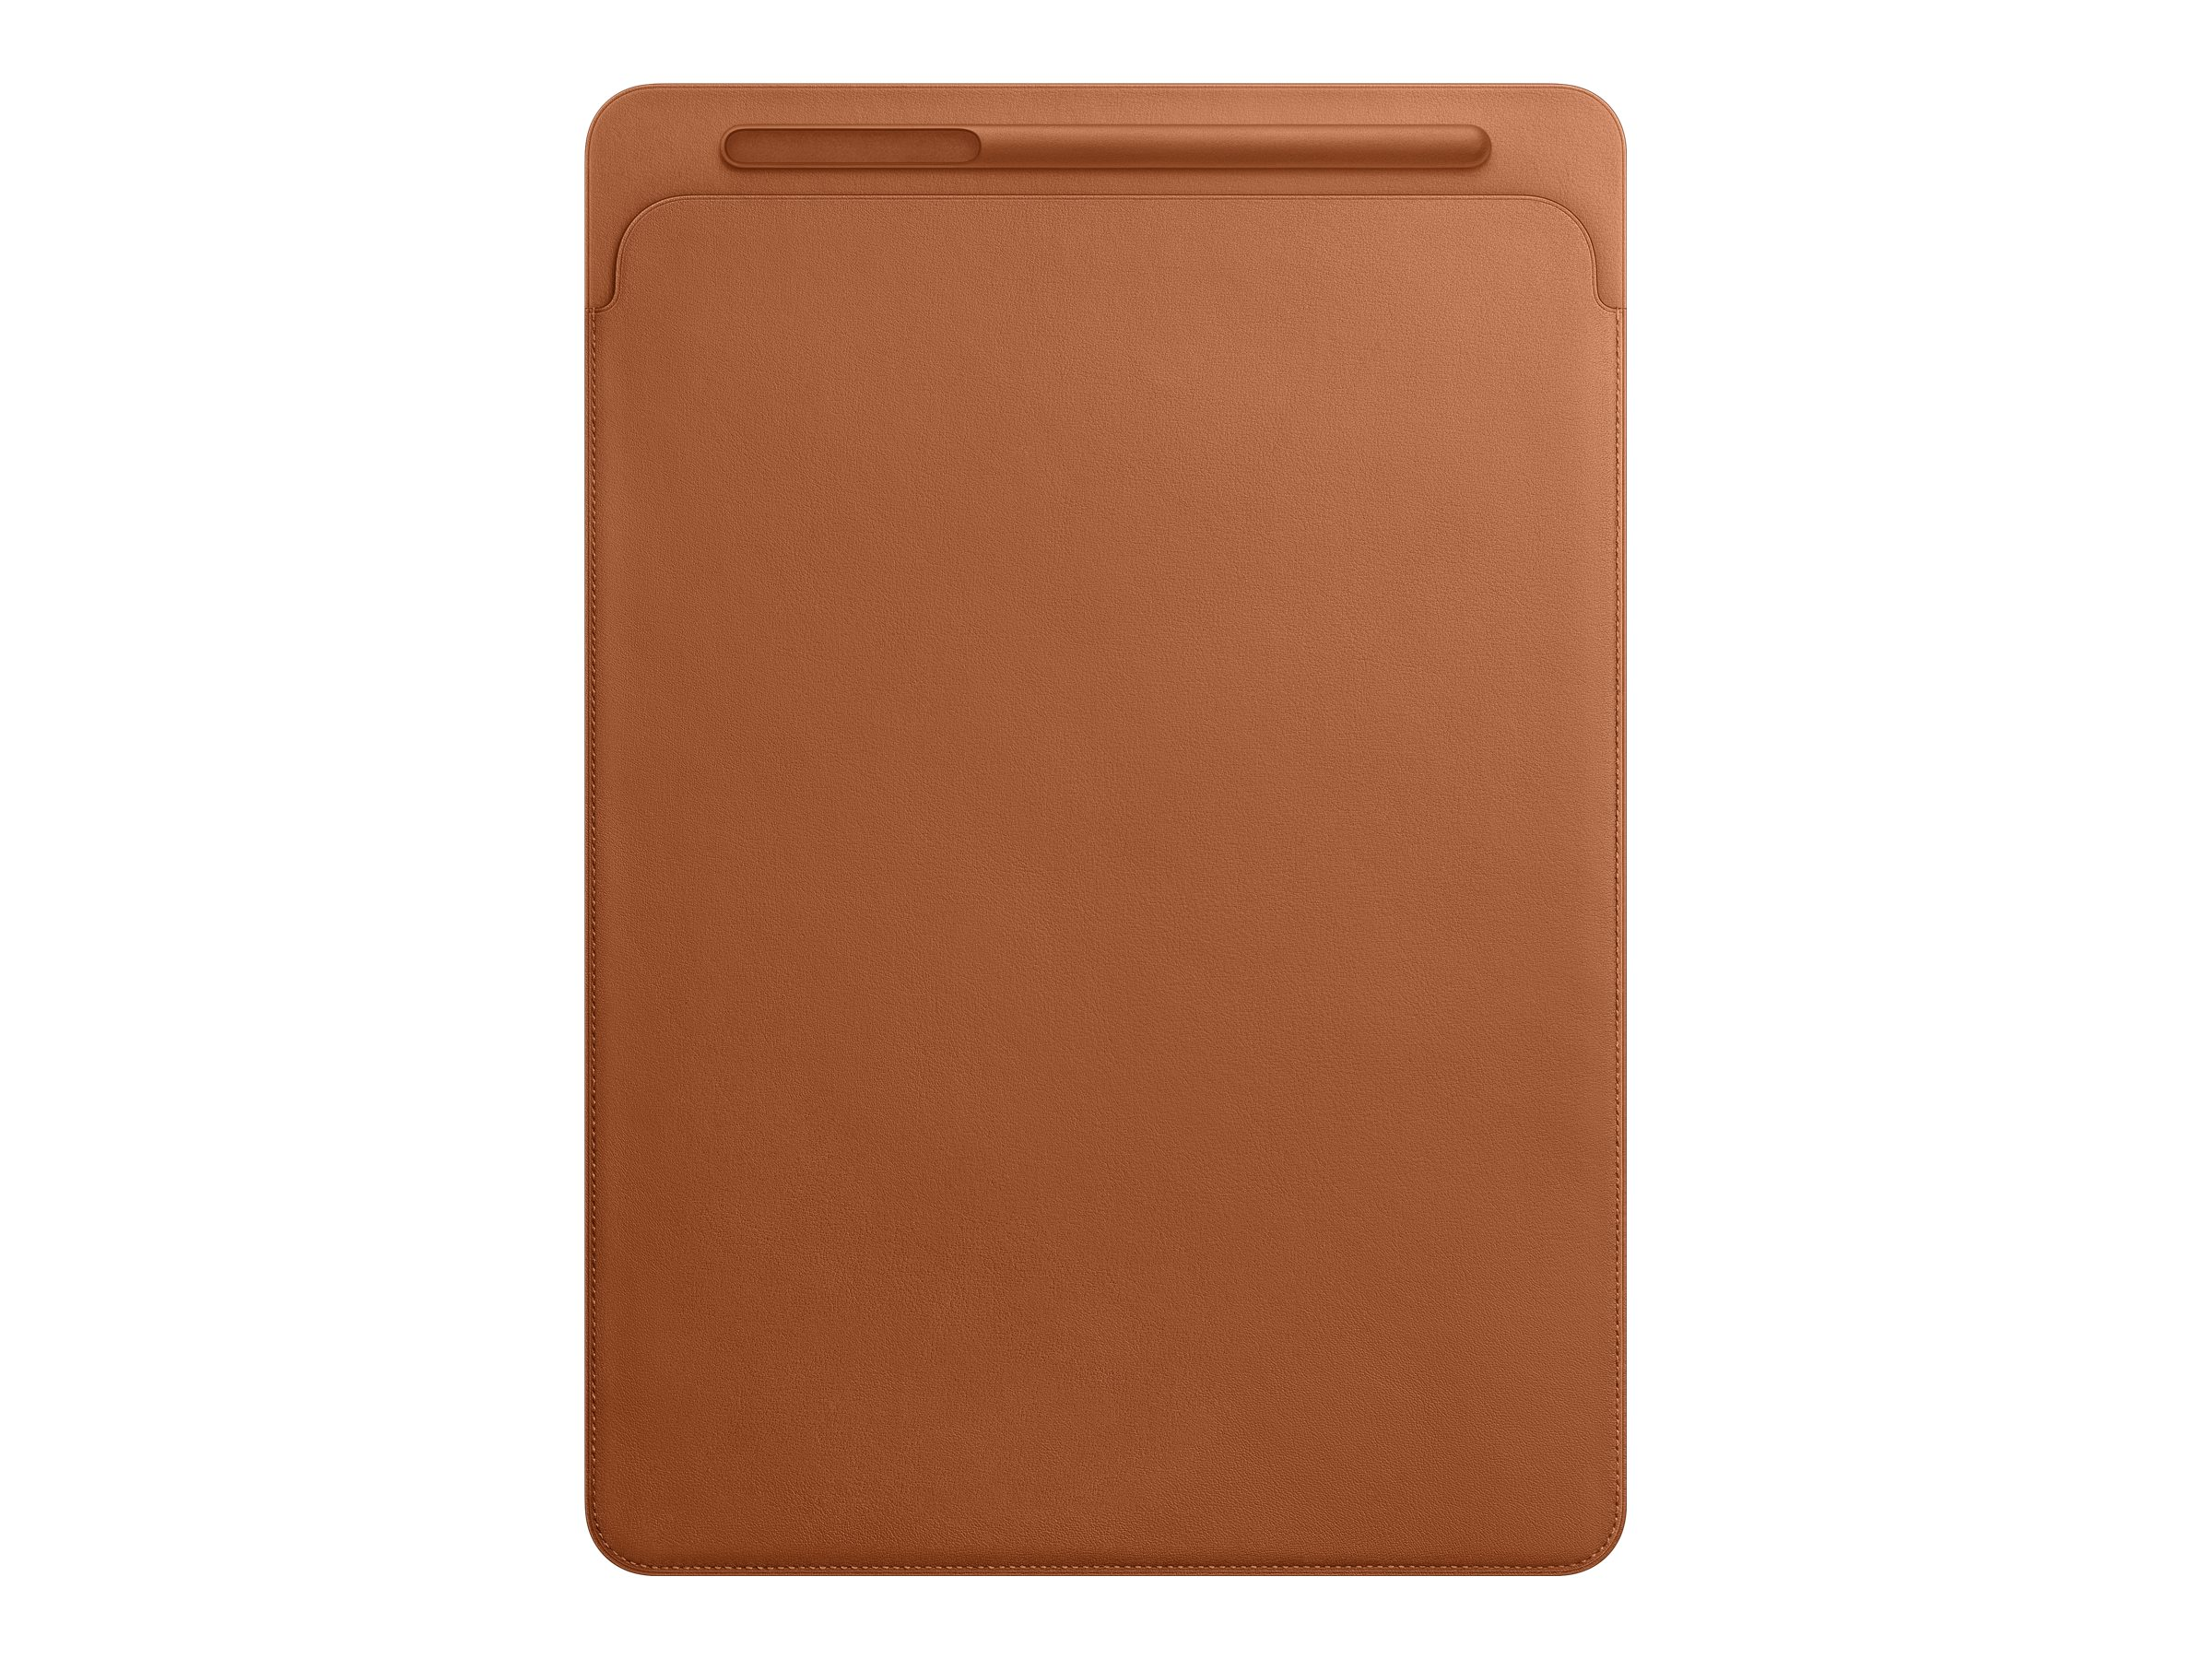 Apple Leather Sleeve for 12.9 iPad Pro, Saddle Brown